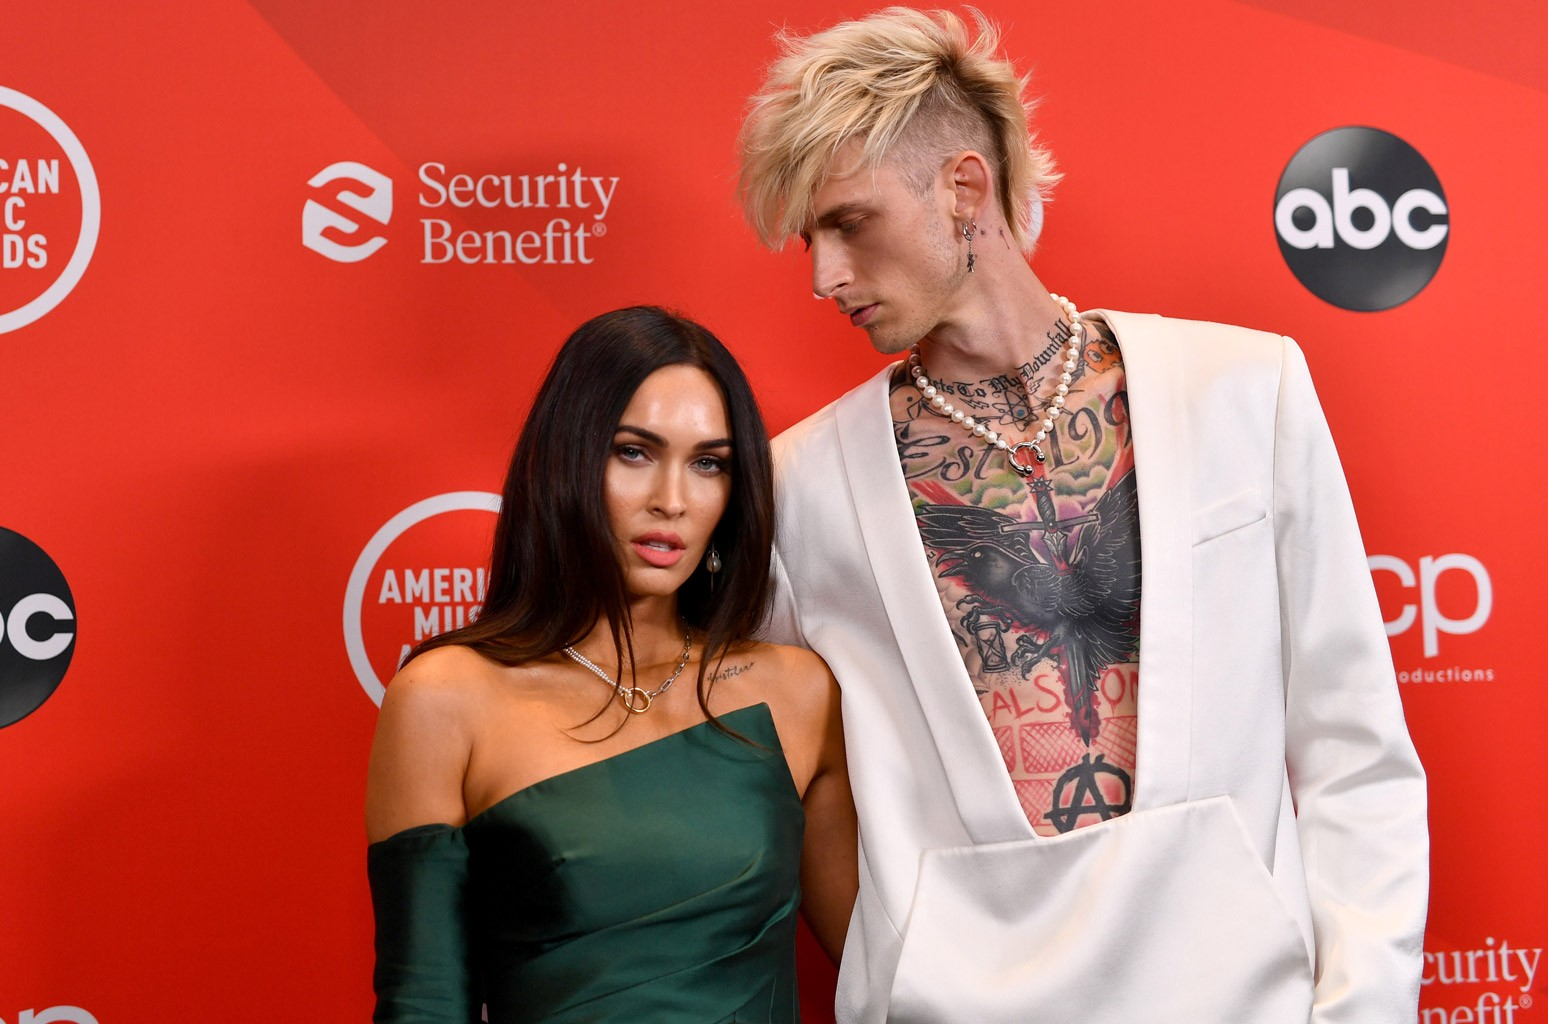 megan-fox-and-machine-gun-kelly-excited-to-celebrate-a-year-since-their-first-meeting-they-are-more-in-love-than-ever